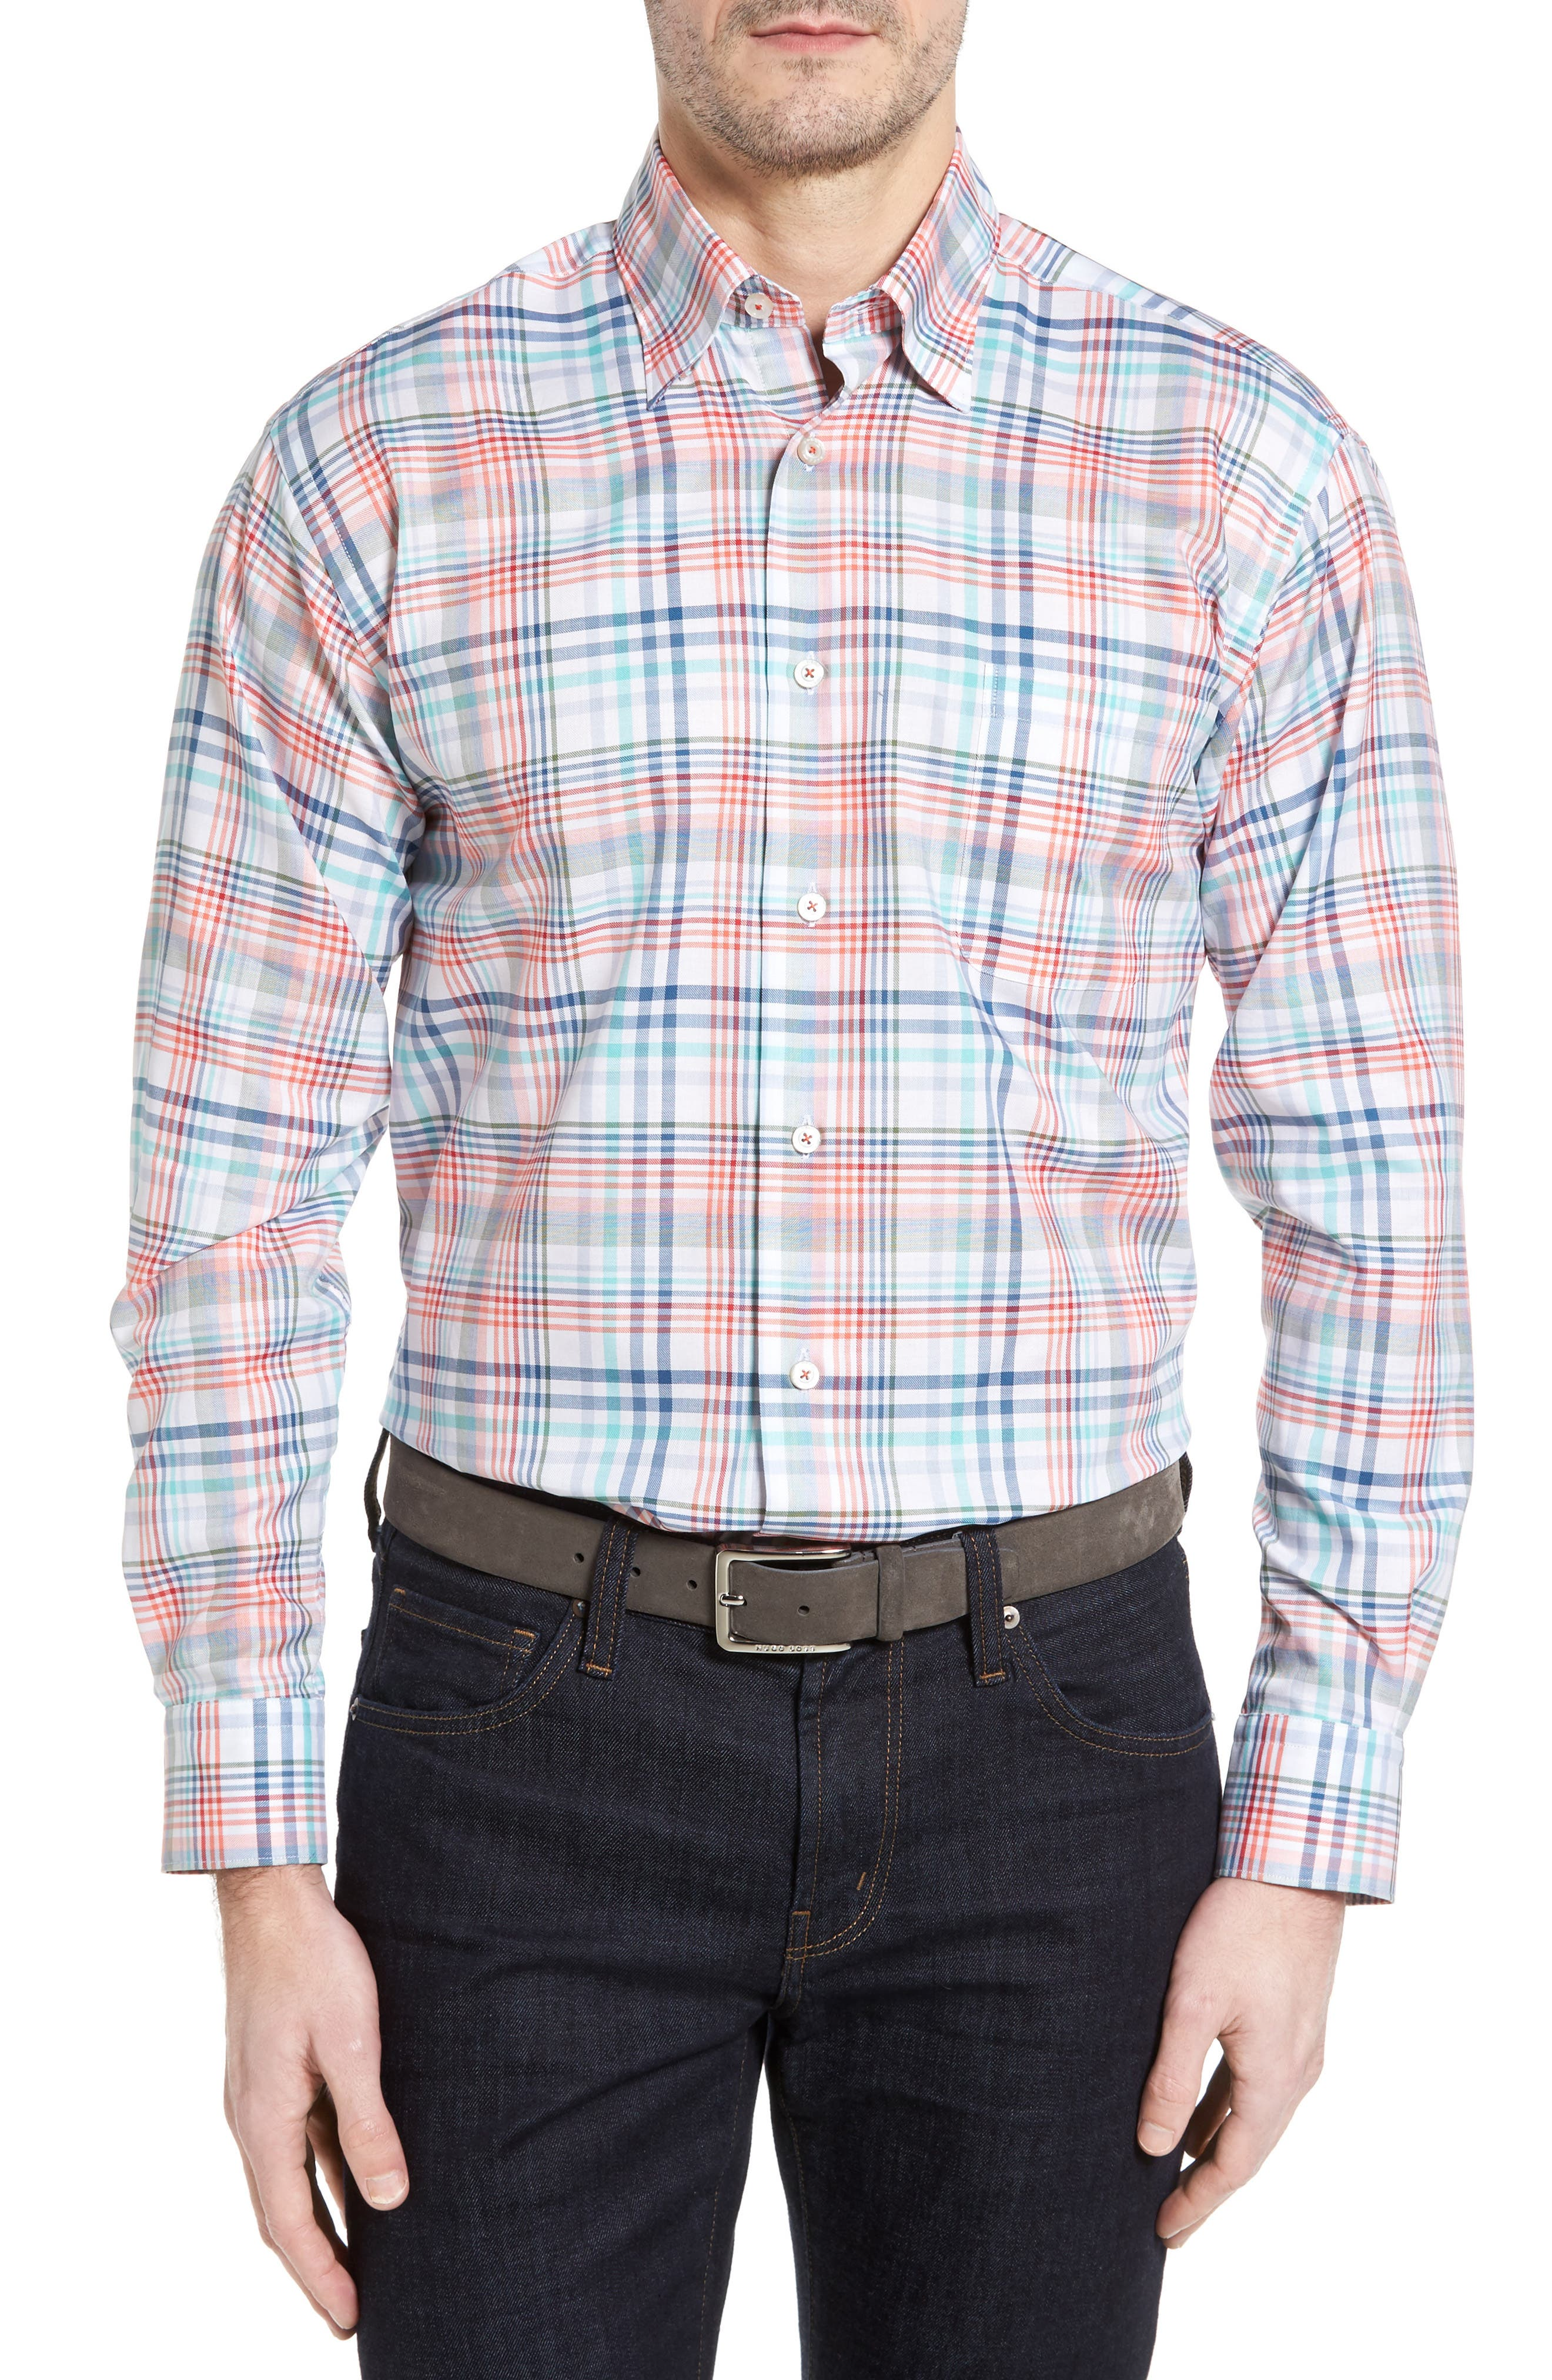 Alternate Image 1 Selected - Robert Talbott Anderson Classic Fit Plaid Twill Sport Shirt